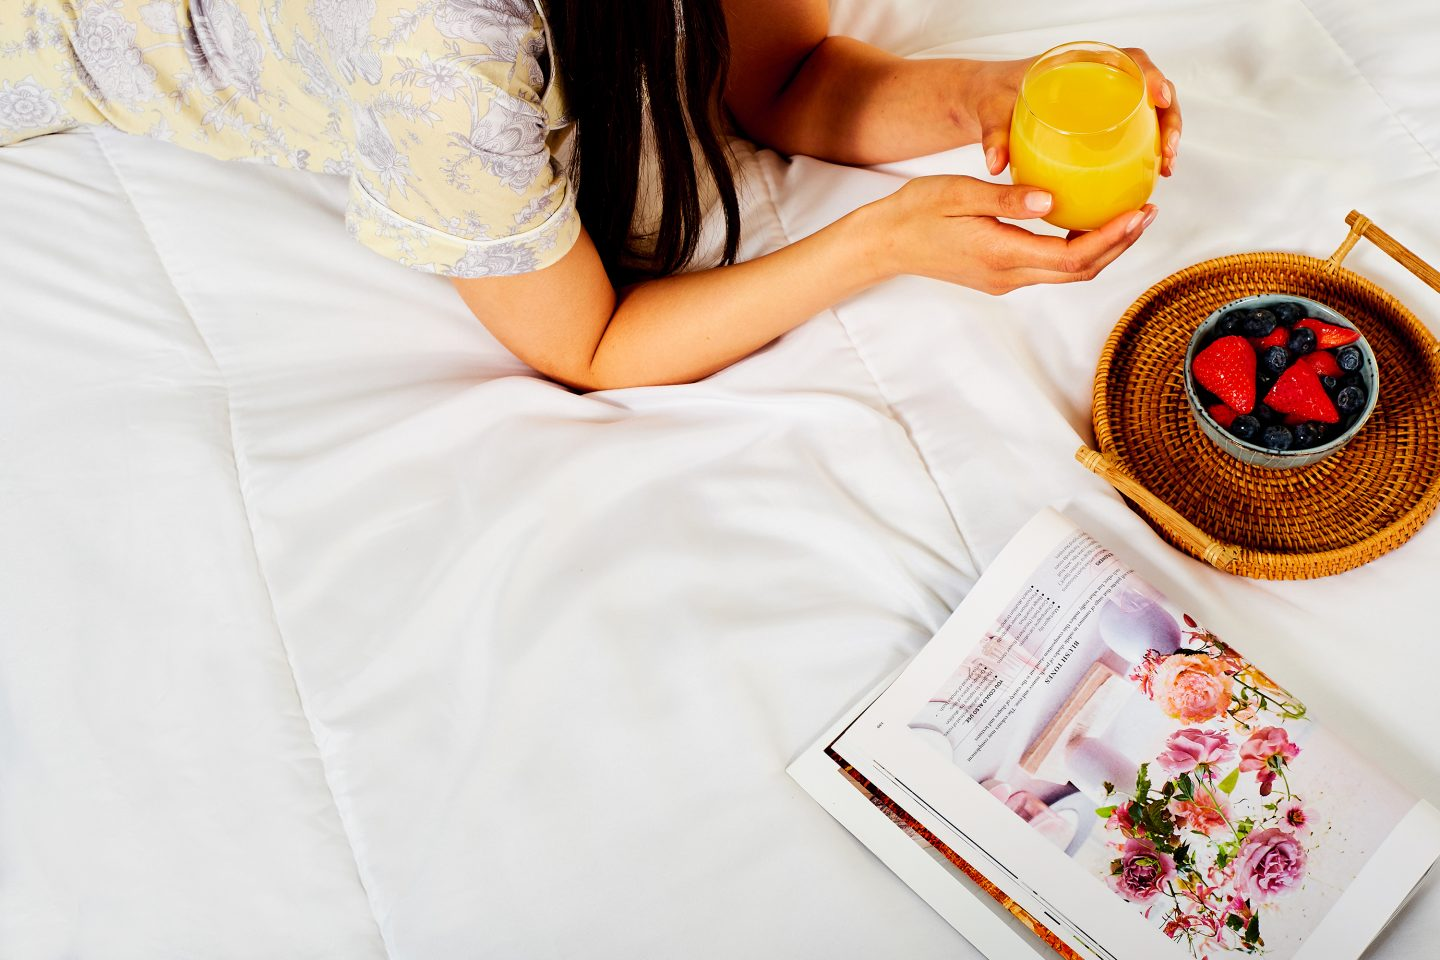 Woman laid on a bed with orange juice and a bowl of fruit